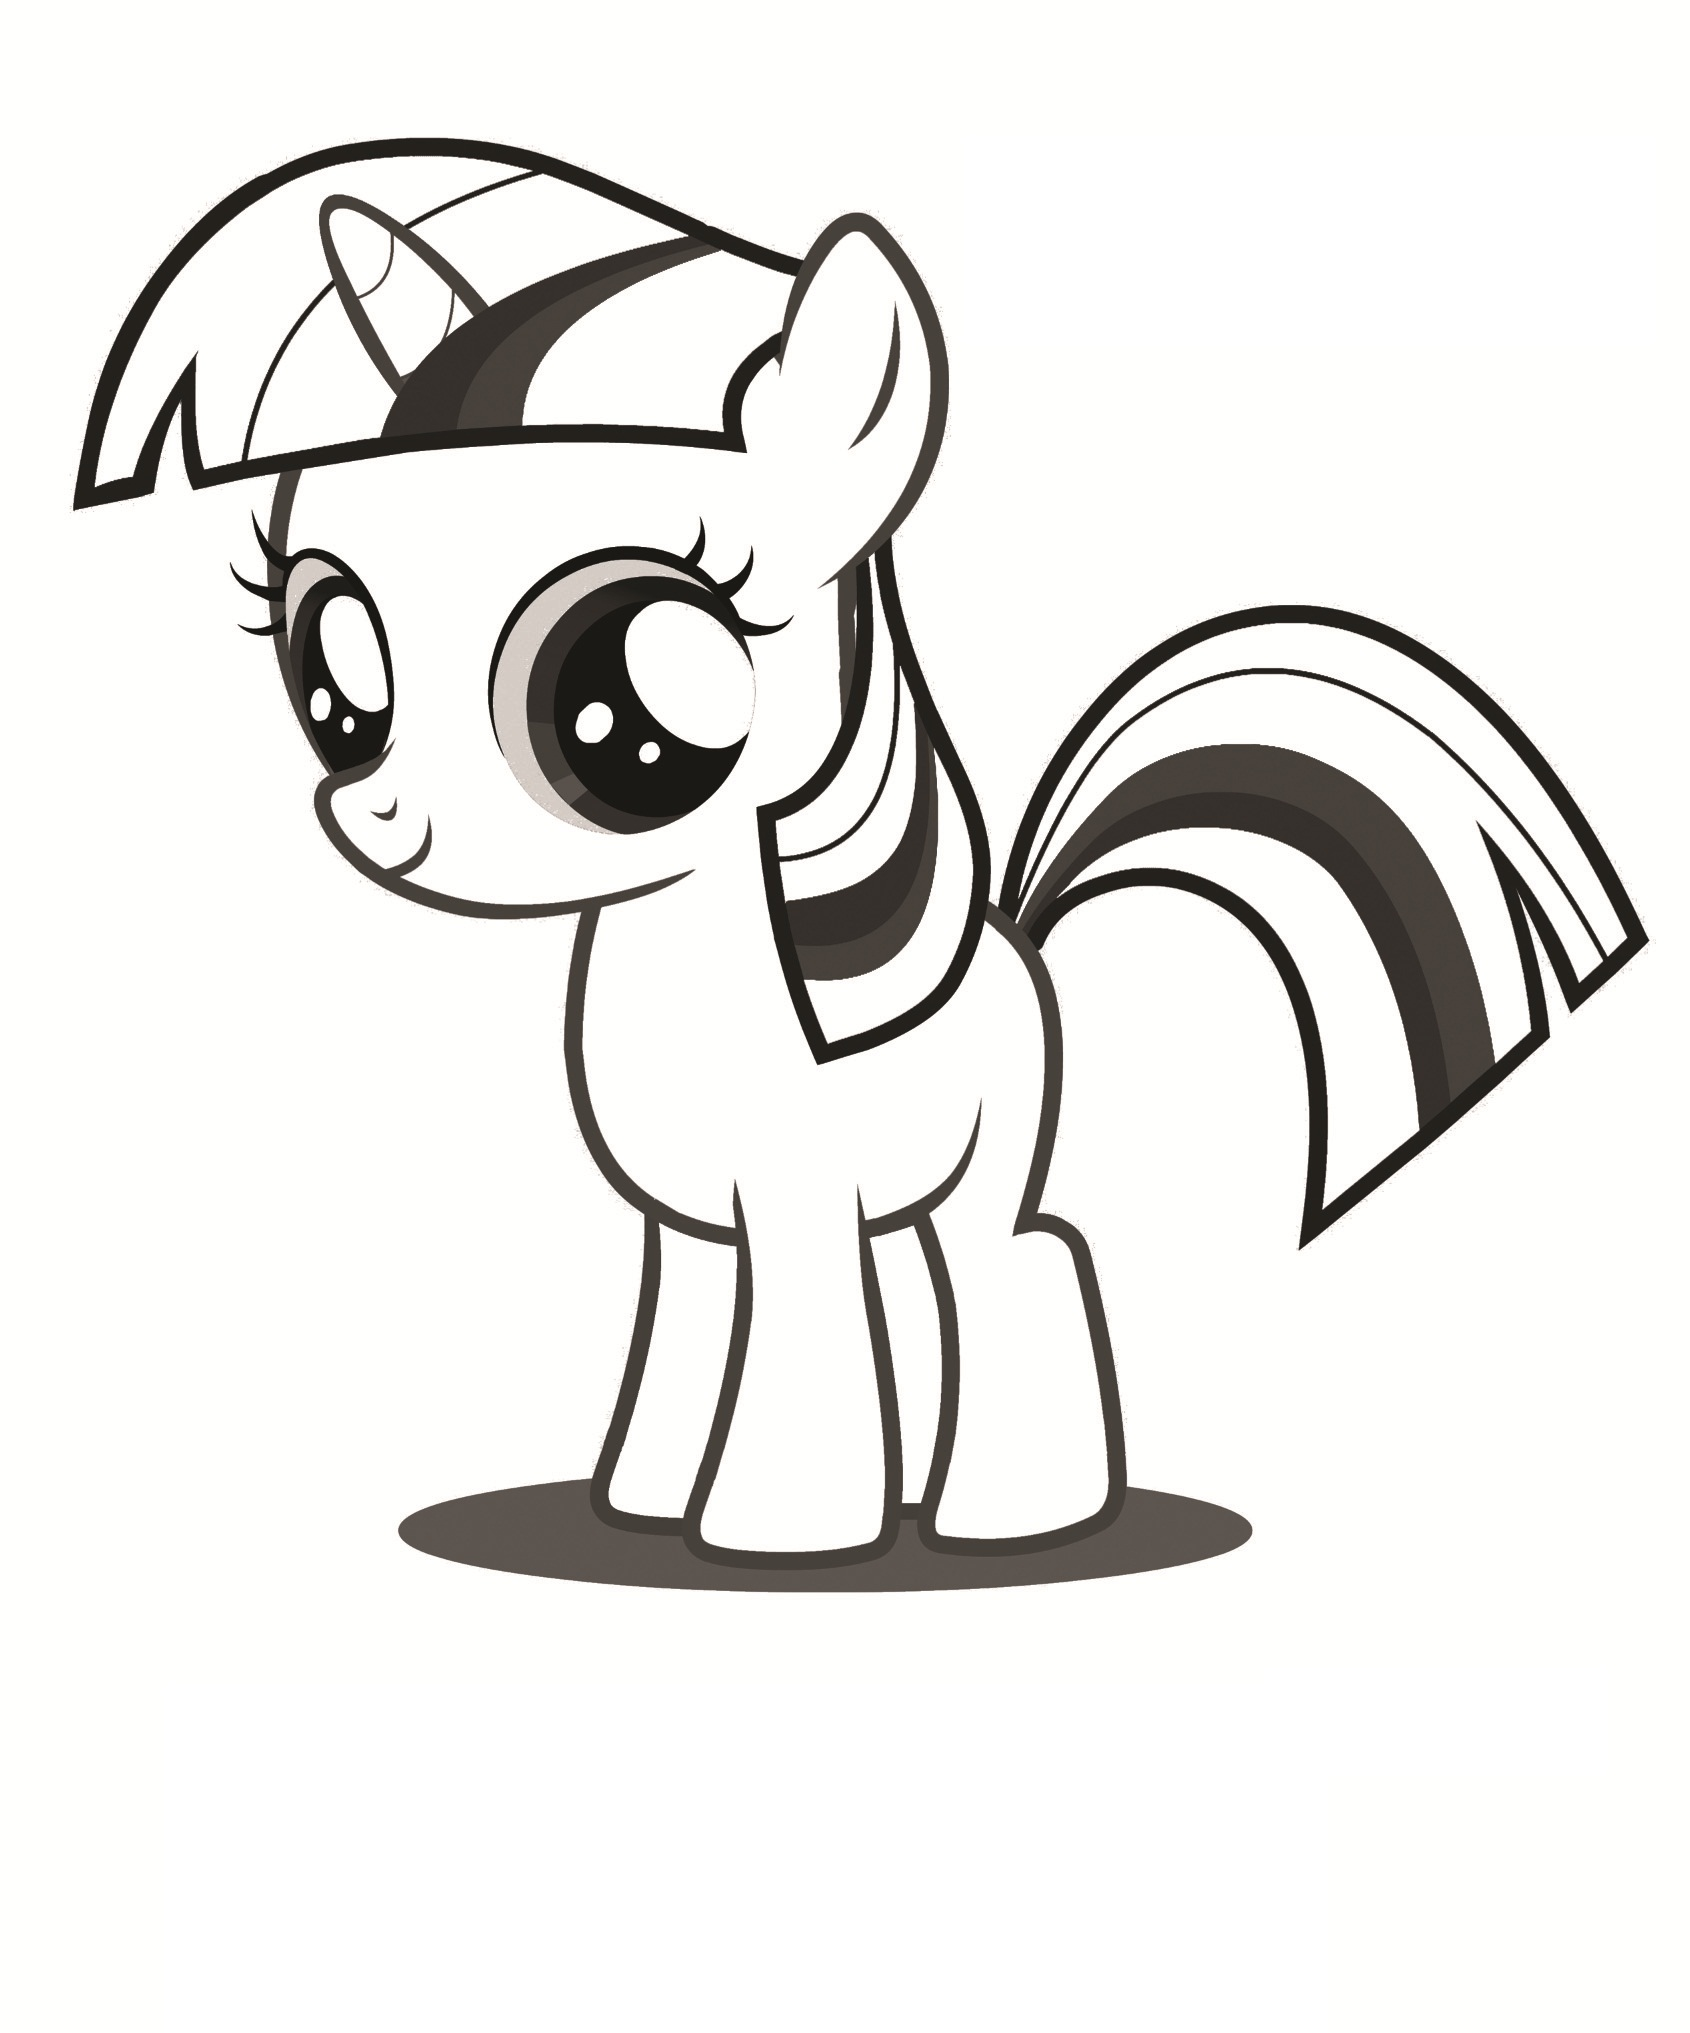 Printable Pony Coloring Pages : printable, coloring, pages, Printable, Little, Coloring, Pages